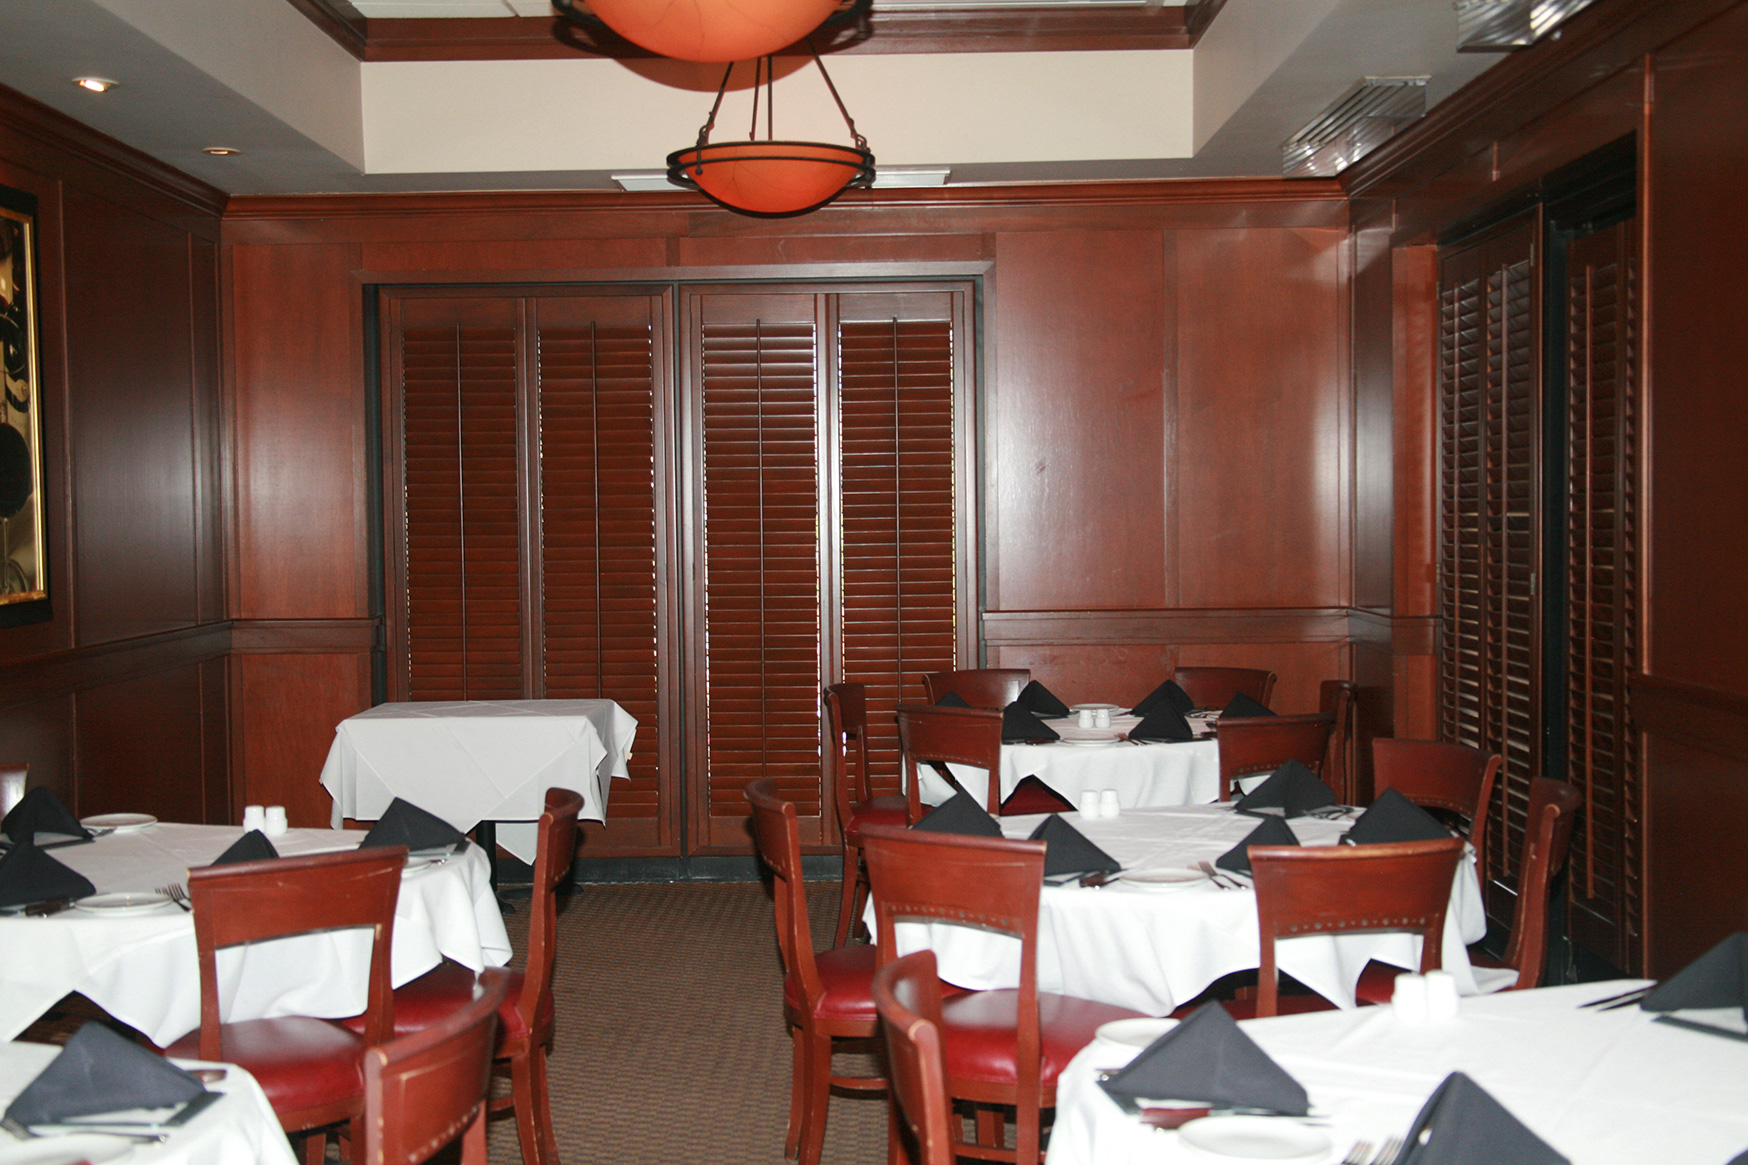 Fleming's - Prime goal was to maintain a rich look of wood throughout the restaurant while gaining light control and privacy throughout the entire building, including the windows and doors.